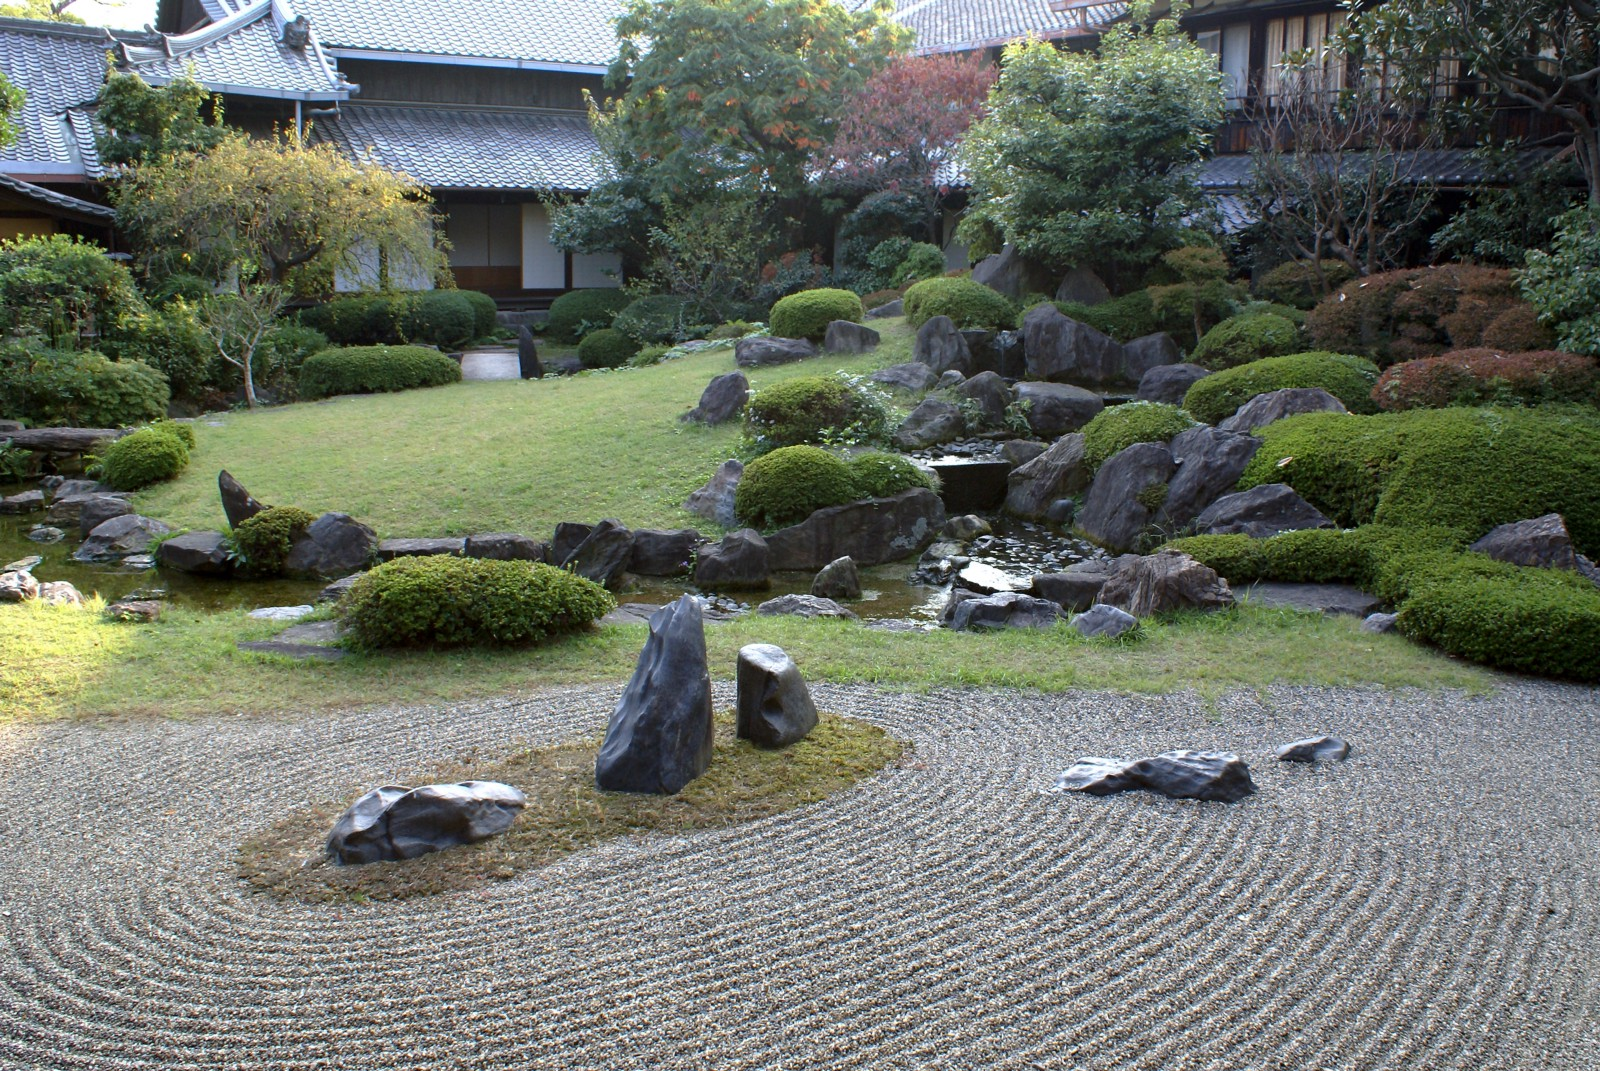 Charmant Just Picture It U2014 Switching From The Crowded Streets Of The City (of  London) To A Serene Zen Garden At Your Backyard. Priceless. So Keep Reading  To See How ...